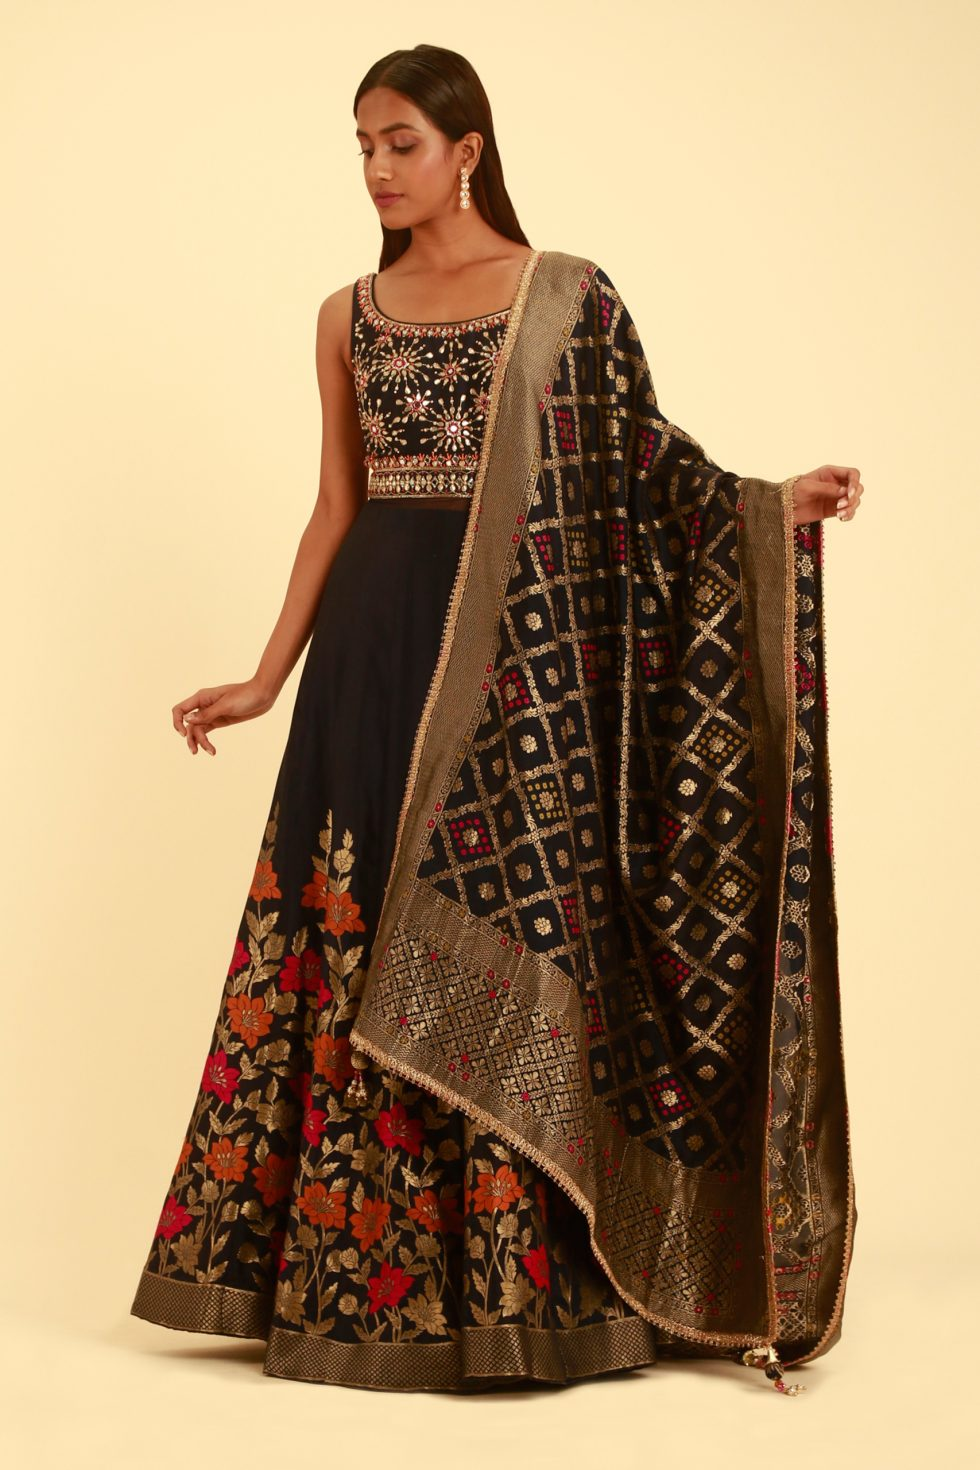 Raven Black Multicoloured Anarkali Gown Set with Banarasi Dupatta and Floral Details